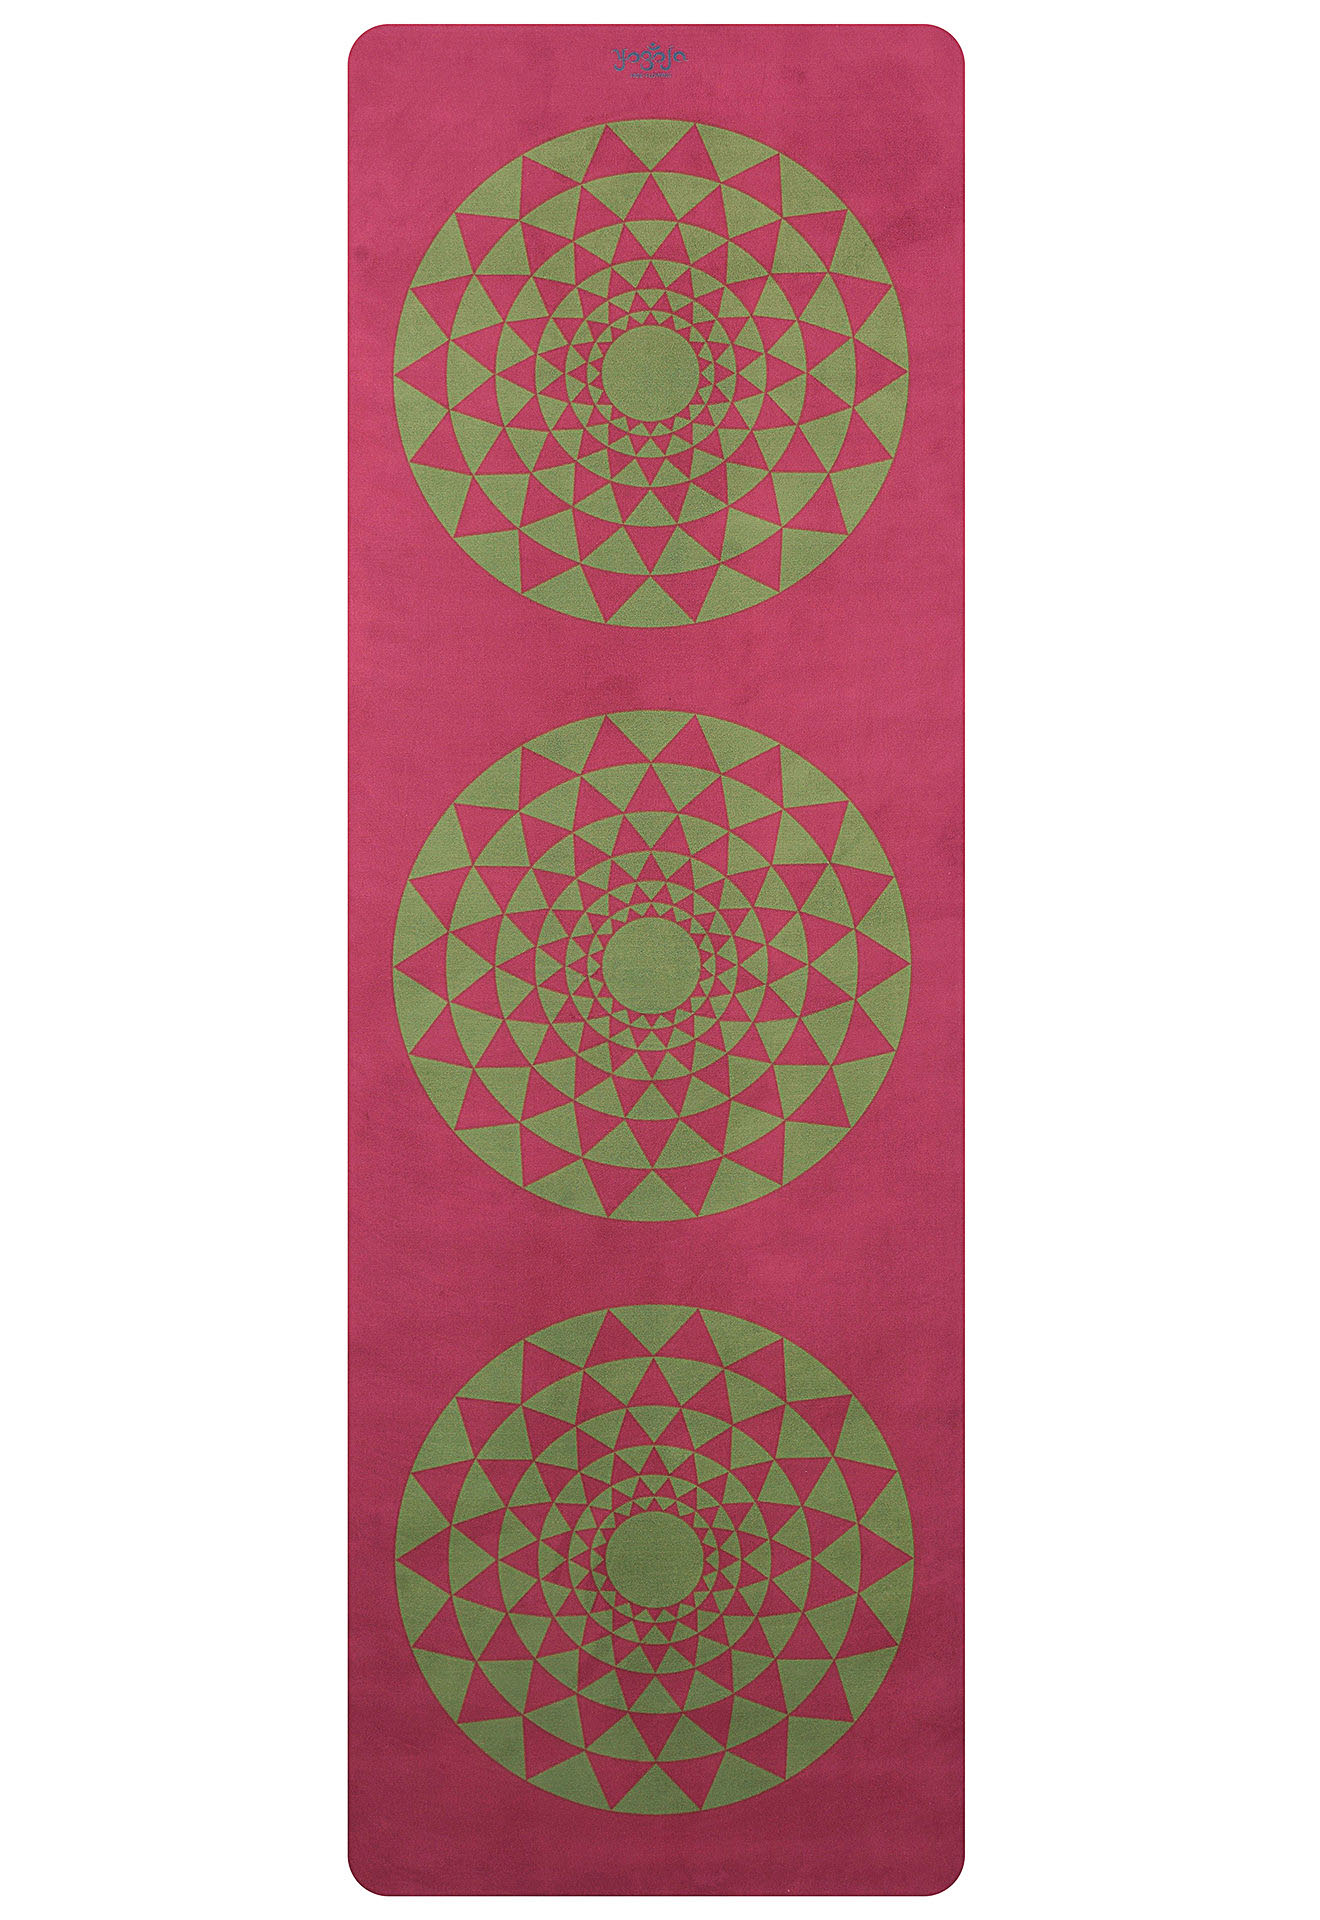 Red Green Journey Yoga Mat Carpet With Unique Design By